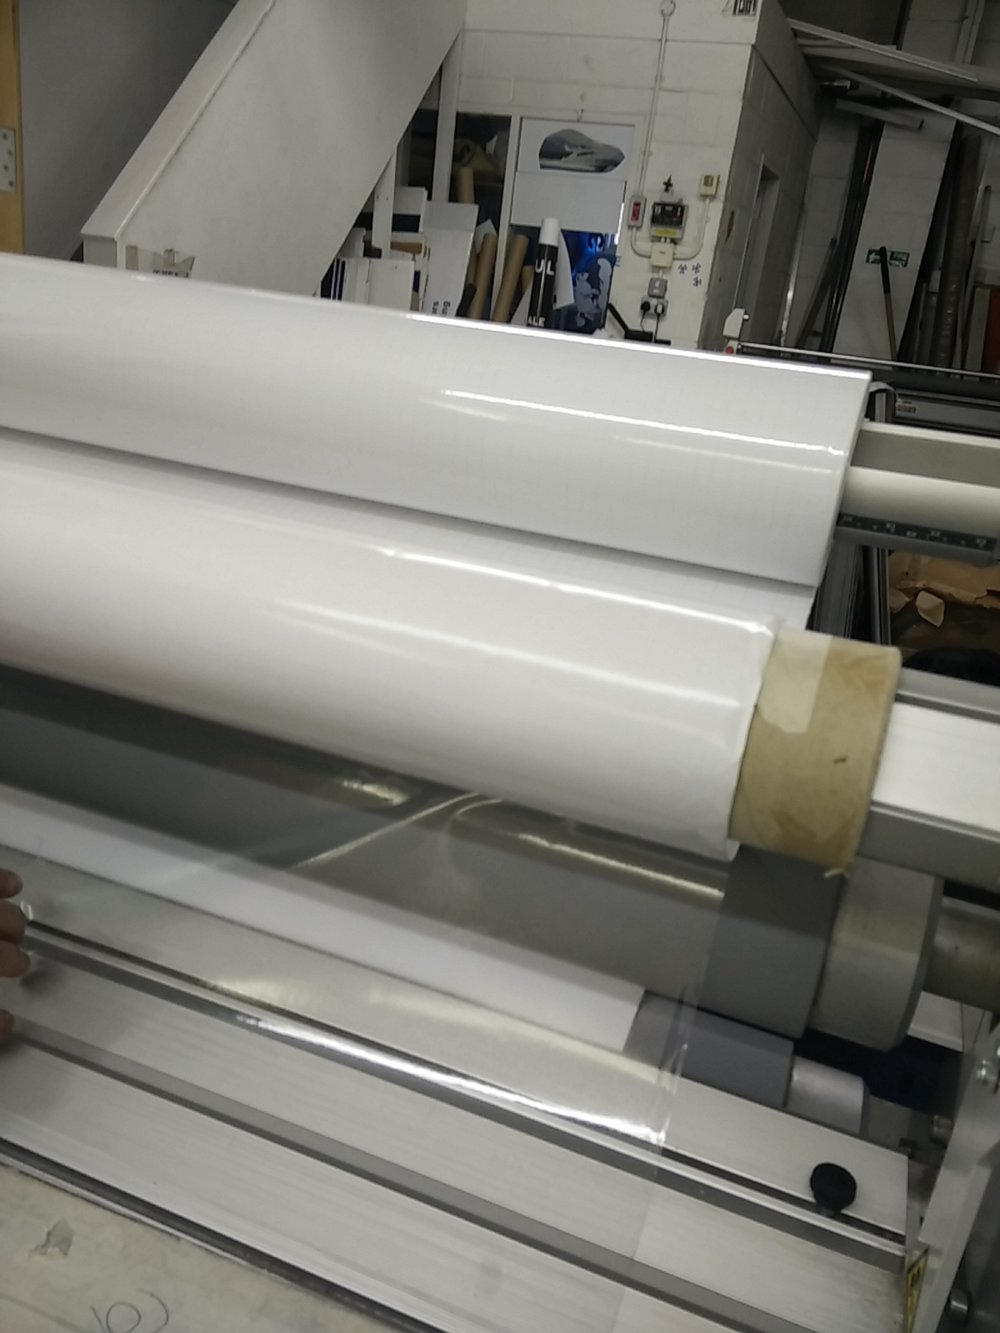 LAMINATOR SEAL 62 PRO S - SEAL 62 PRO Slaminates boards up to 1600mm wide with clear protective matt or gloss film